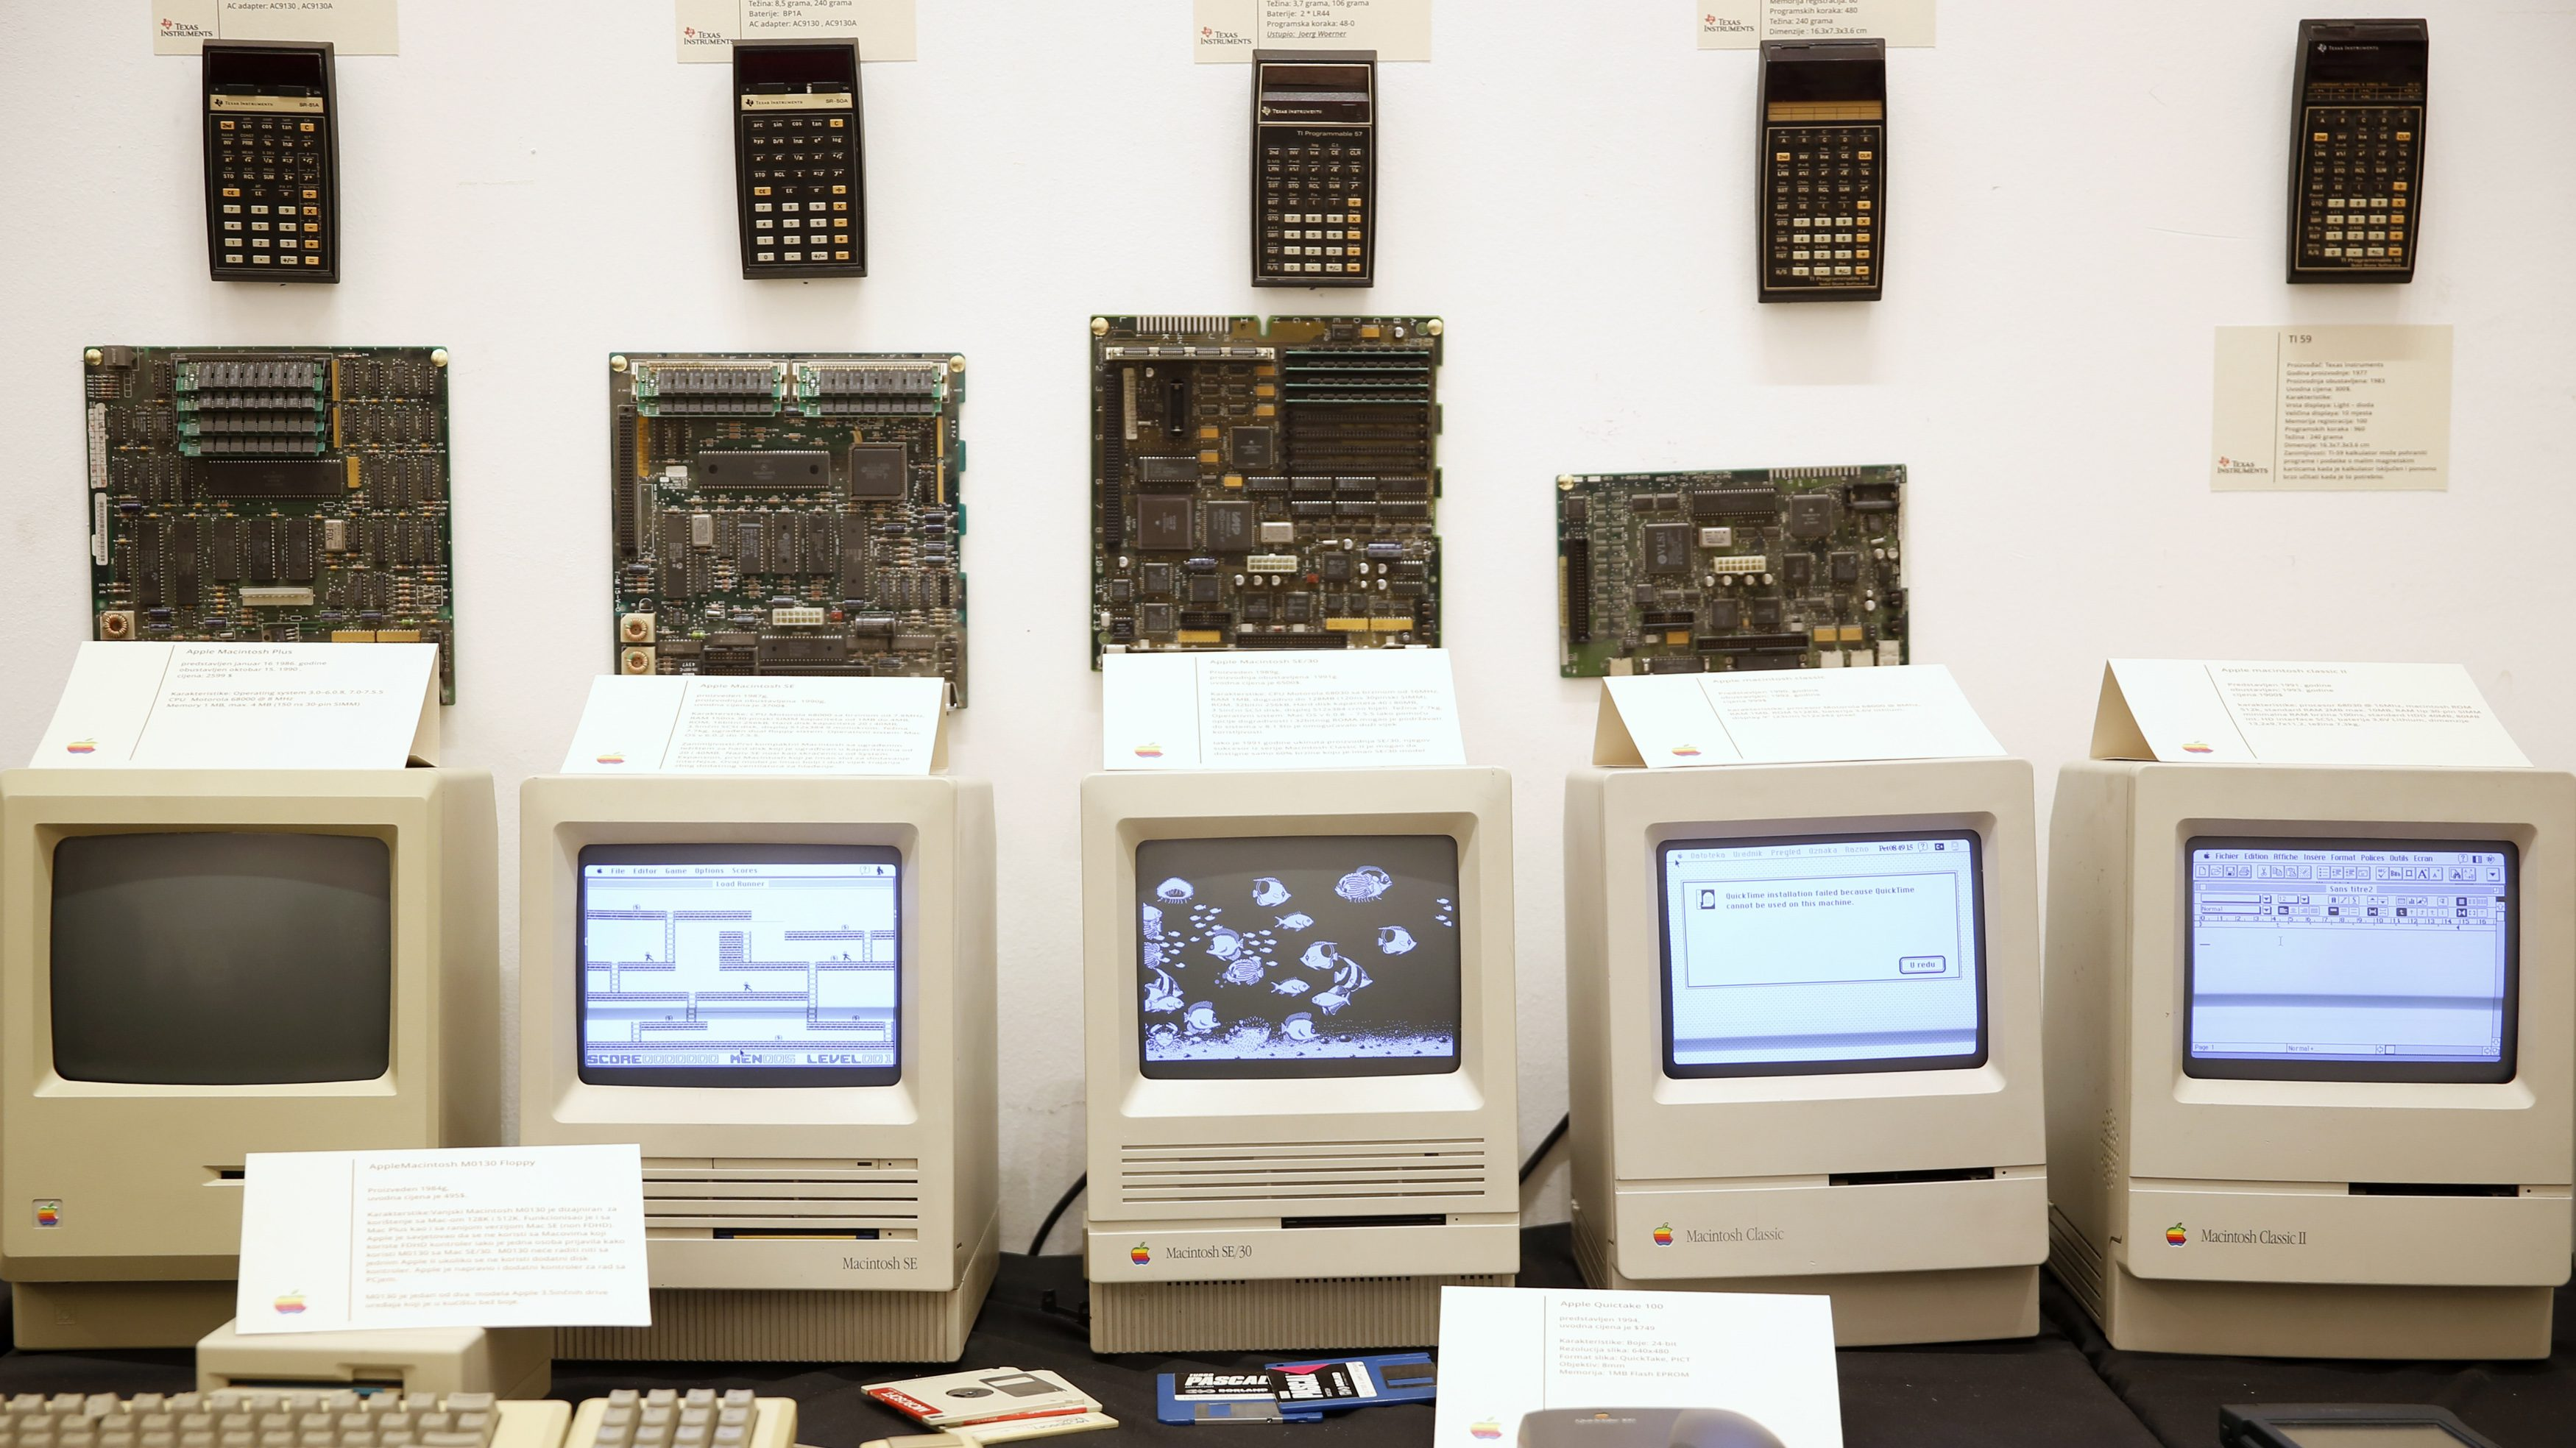 "Apple's Macintosh motherboards and computers together with calculators are displayed during the ""History of Computers"" exhibition in Sarajevo November 30, 2013. 110 computers from the 1970s to 2008 are displayed during the exhibition, ahead of the opening of the Sarajevo museum of old computers."